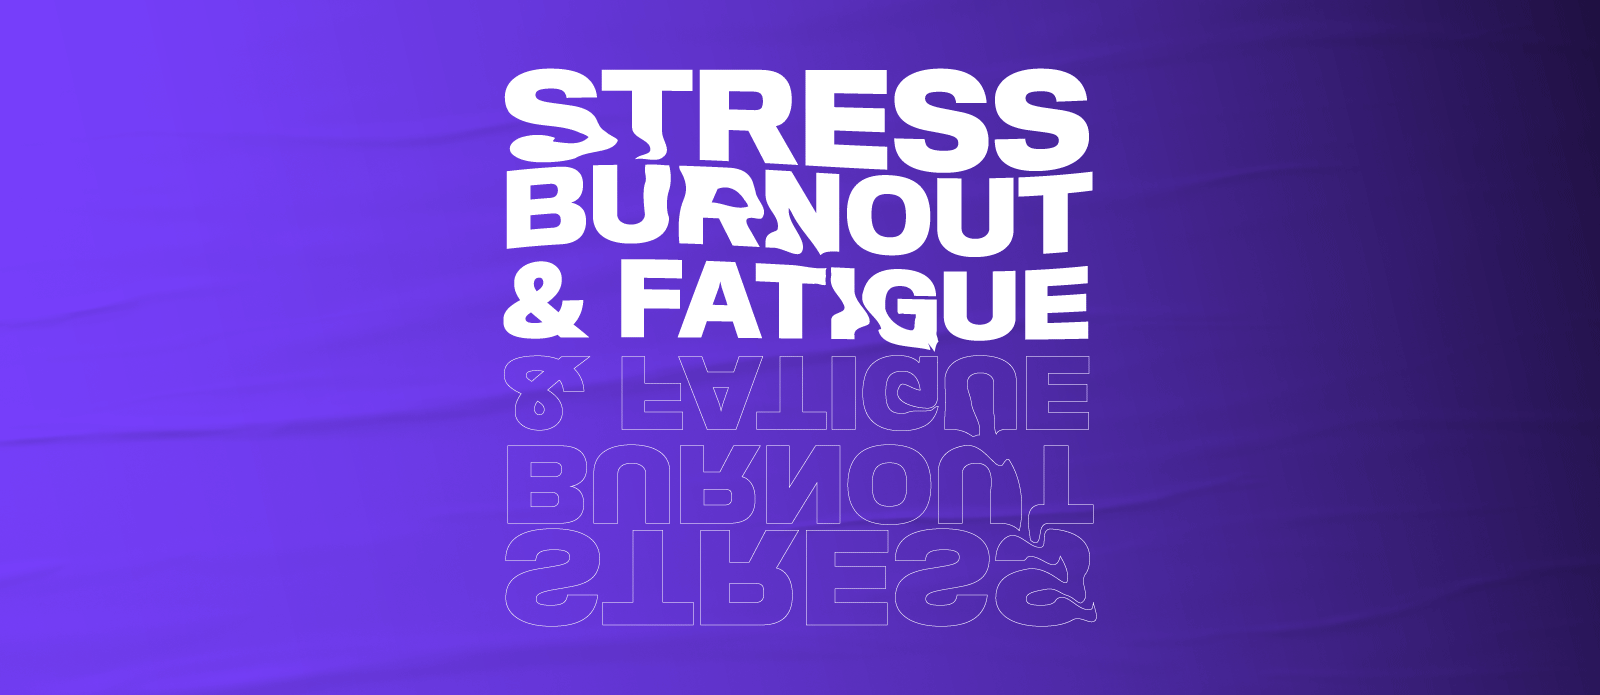 How to Help Higher Education Faculty With Stress and Faculty Burnout During COVID-19